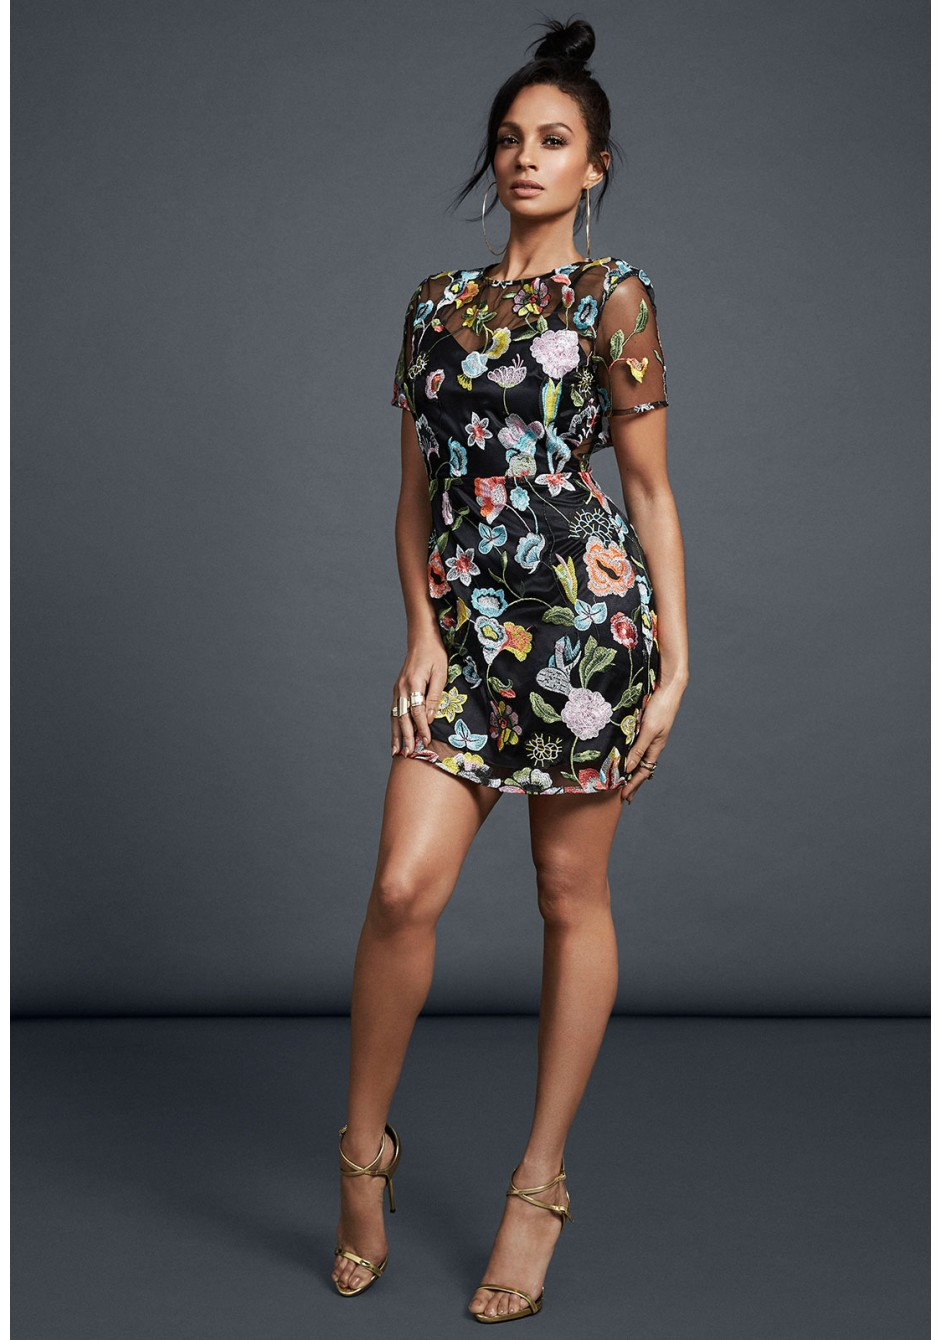 Alesha Dixon Flower Embroidered Mini Dress with Sheer Detail